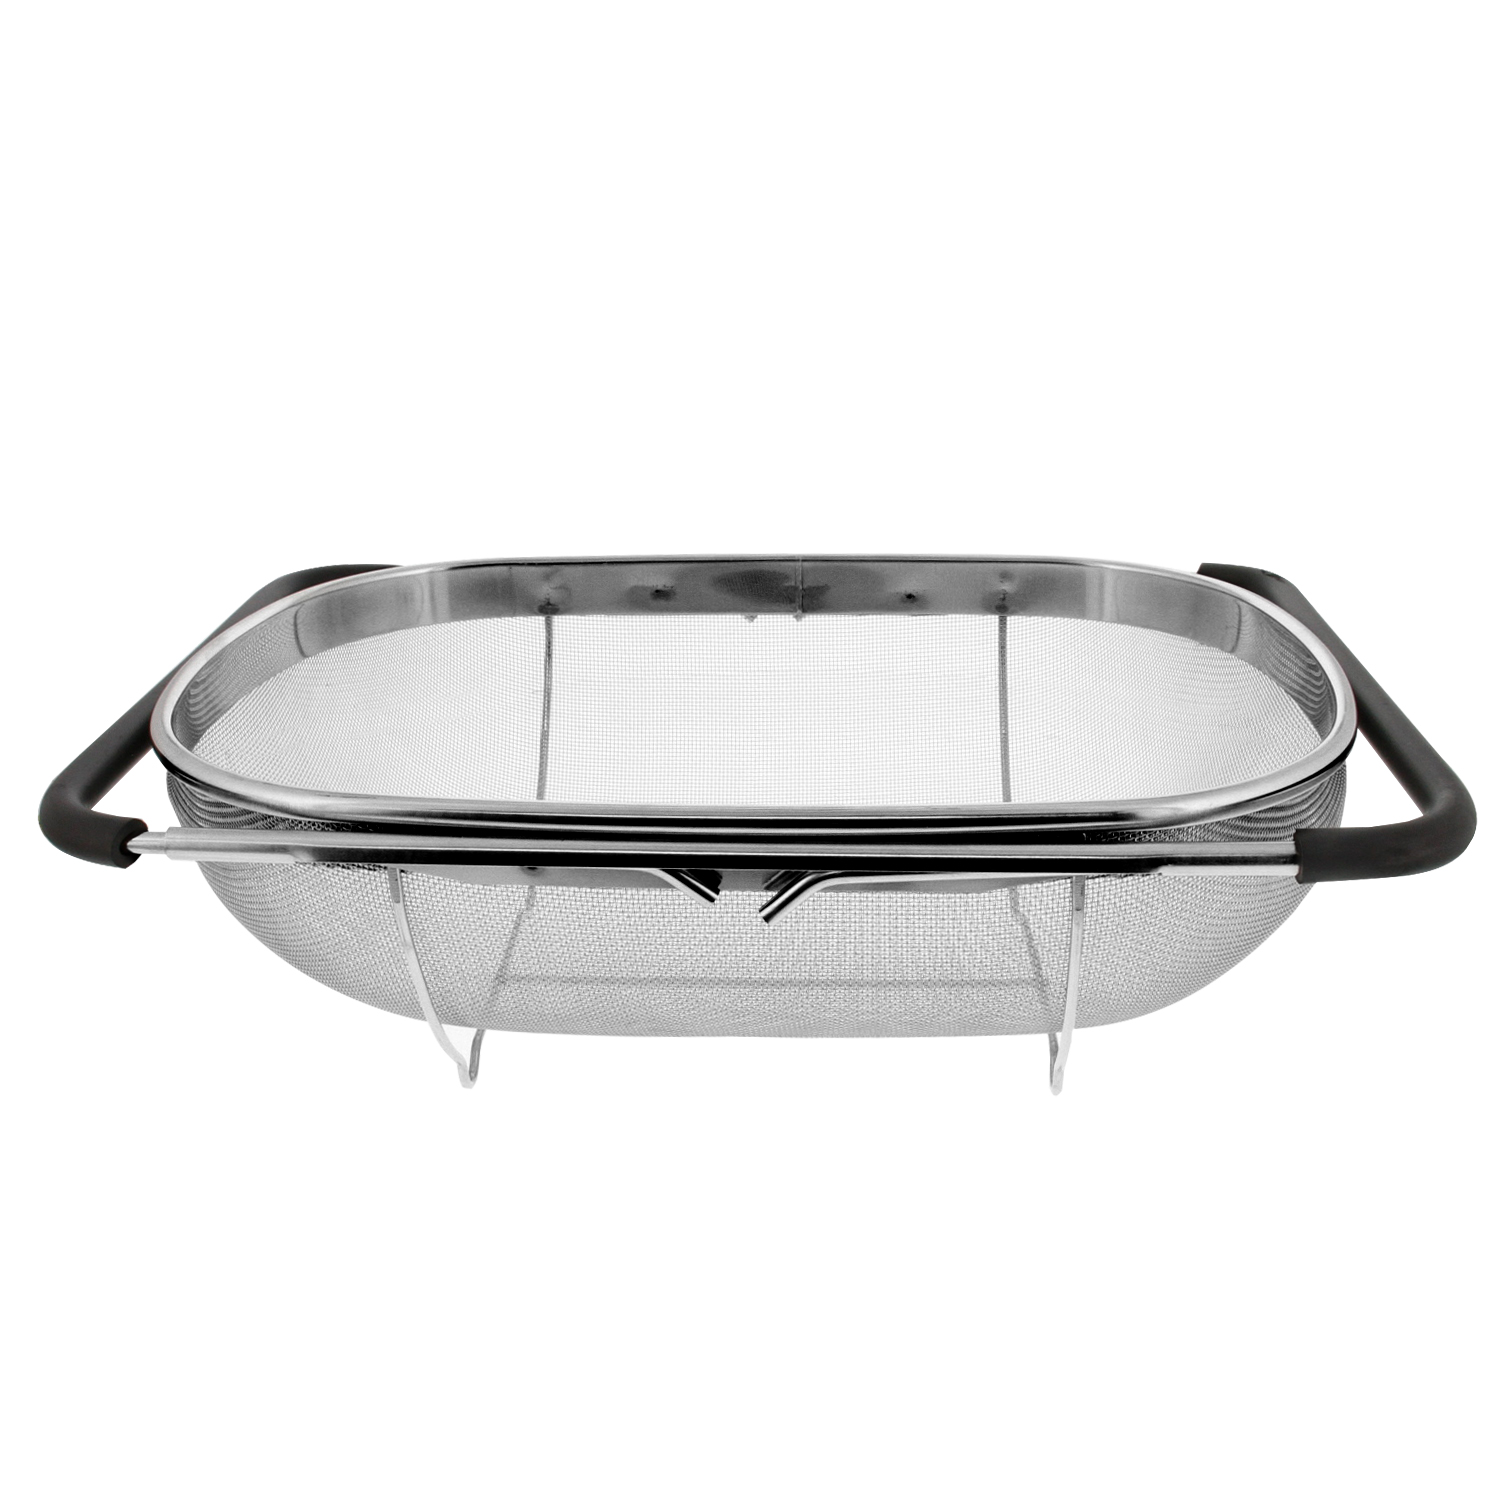 U.S. Kitchen Supply Over The Sink Deep Well Oval Stainless Steel Colander  Fine Mesh W/ Extendable Handle   Walmart.com